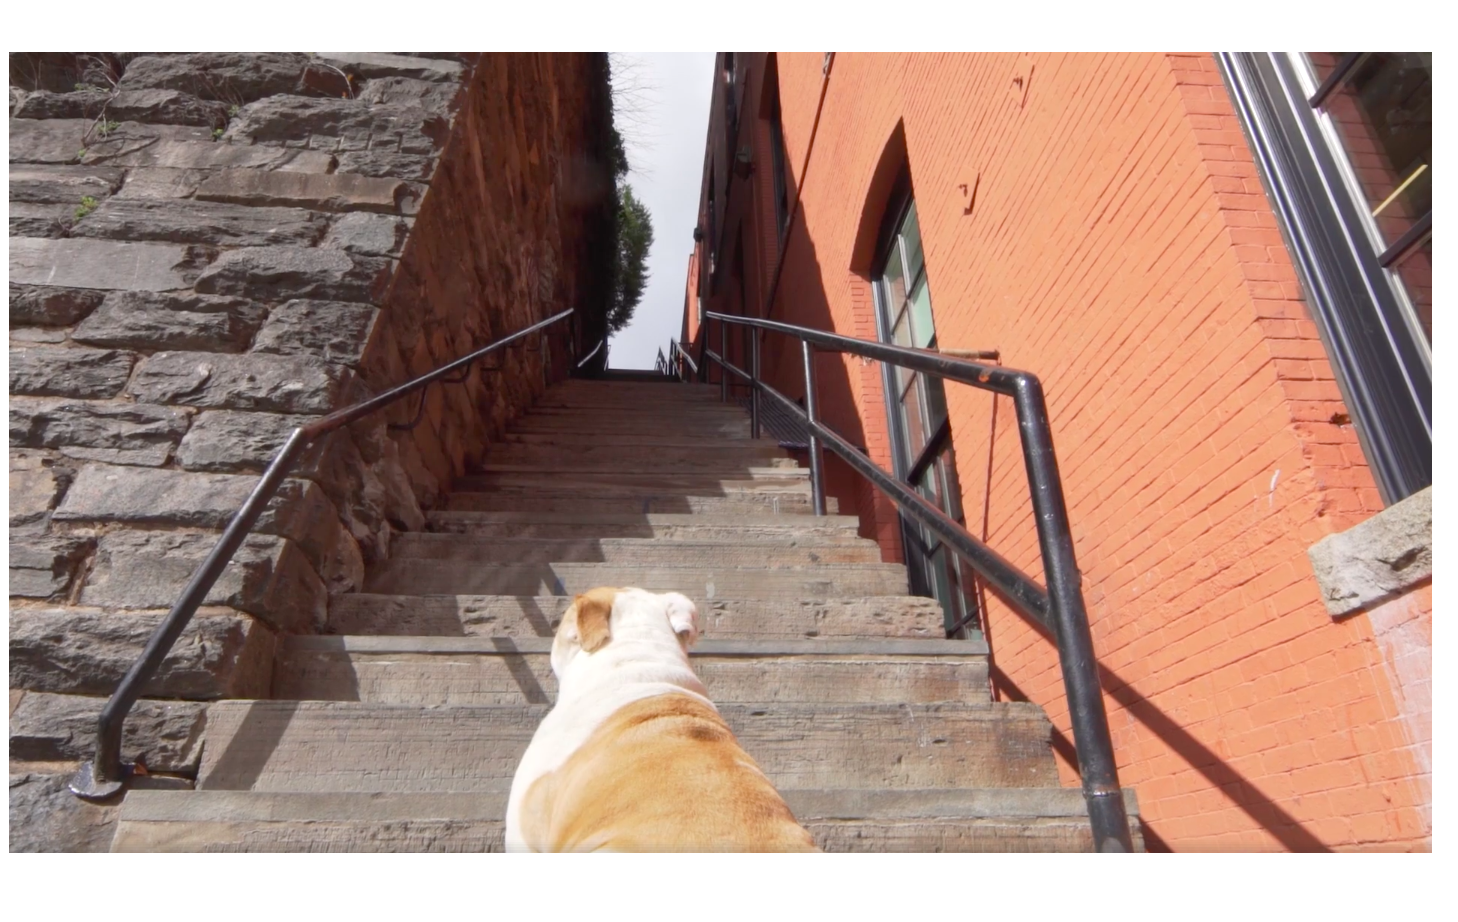 Jack the Bulldog sits at the bottom of the Exorcist steps